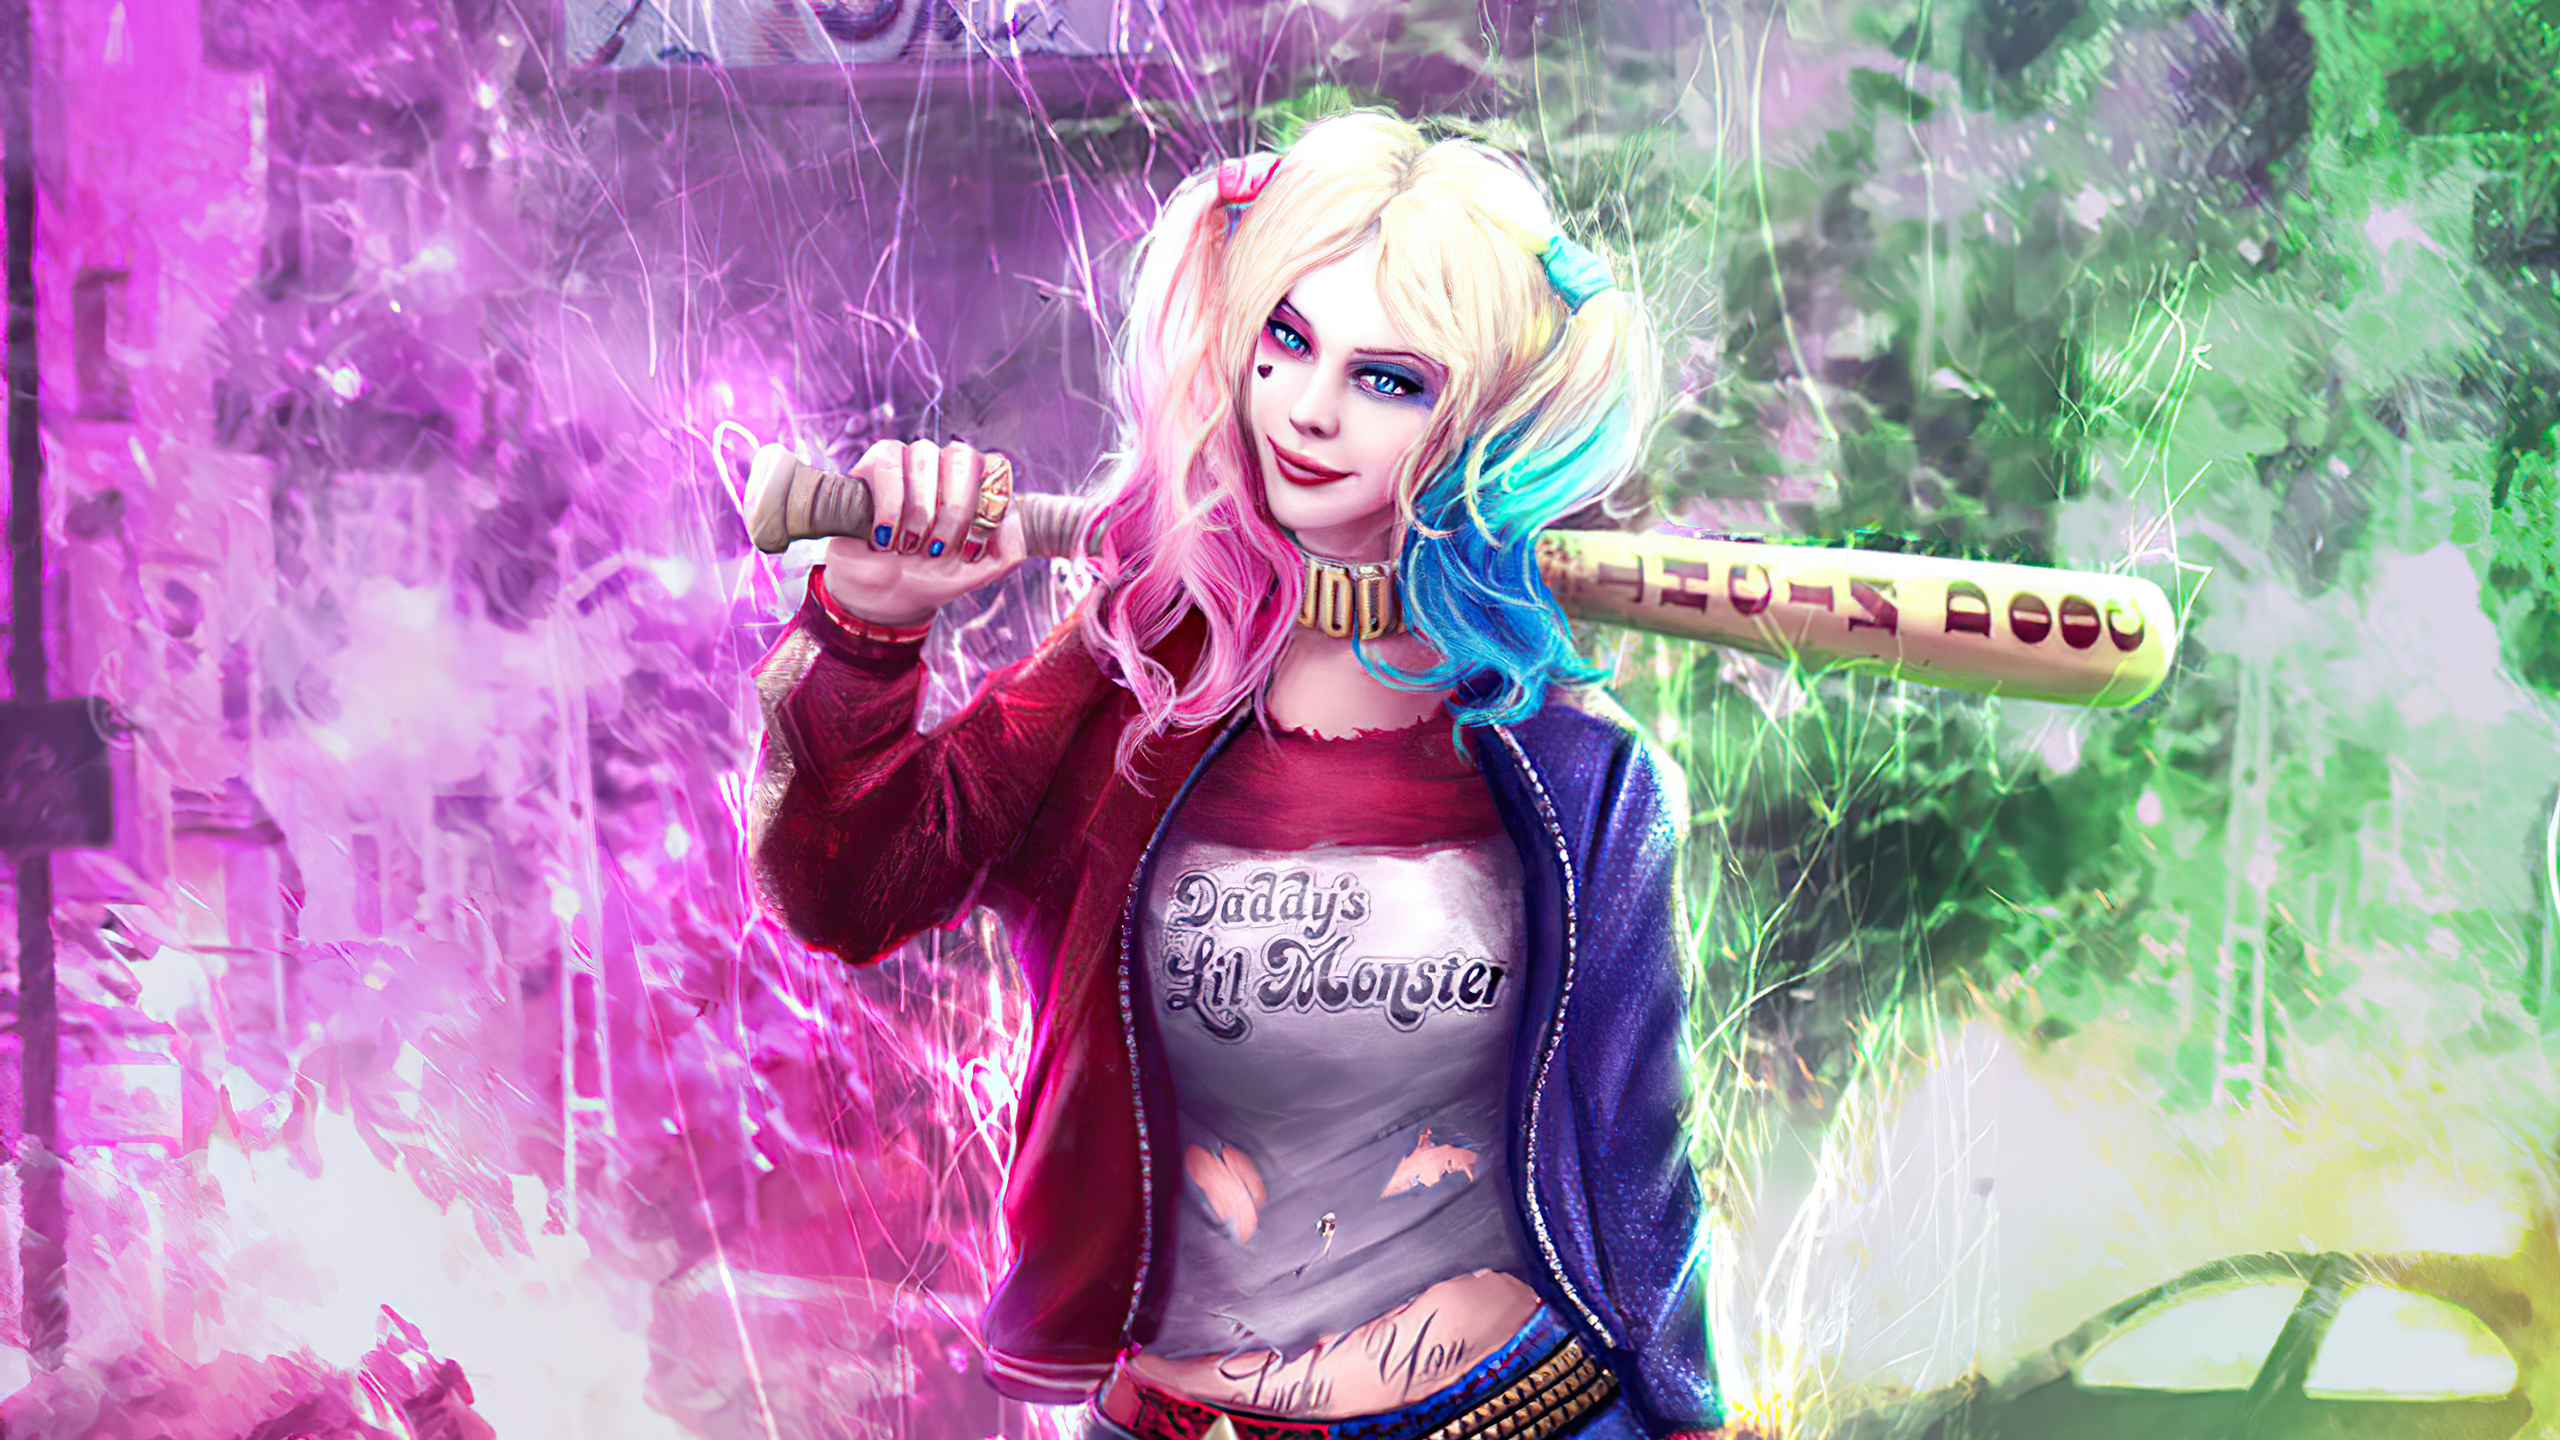 1280x1024 Harley Quinn New Fan Art 1280x1024 Resolution Wallpaper Hd Superheroes 4k Wallpapers Images Photos And Background